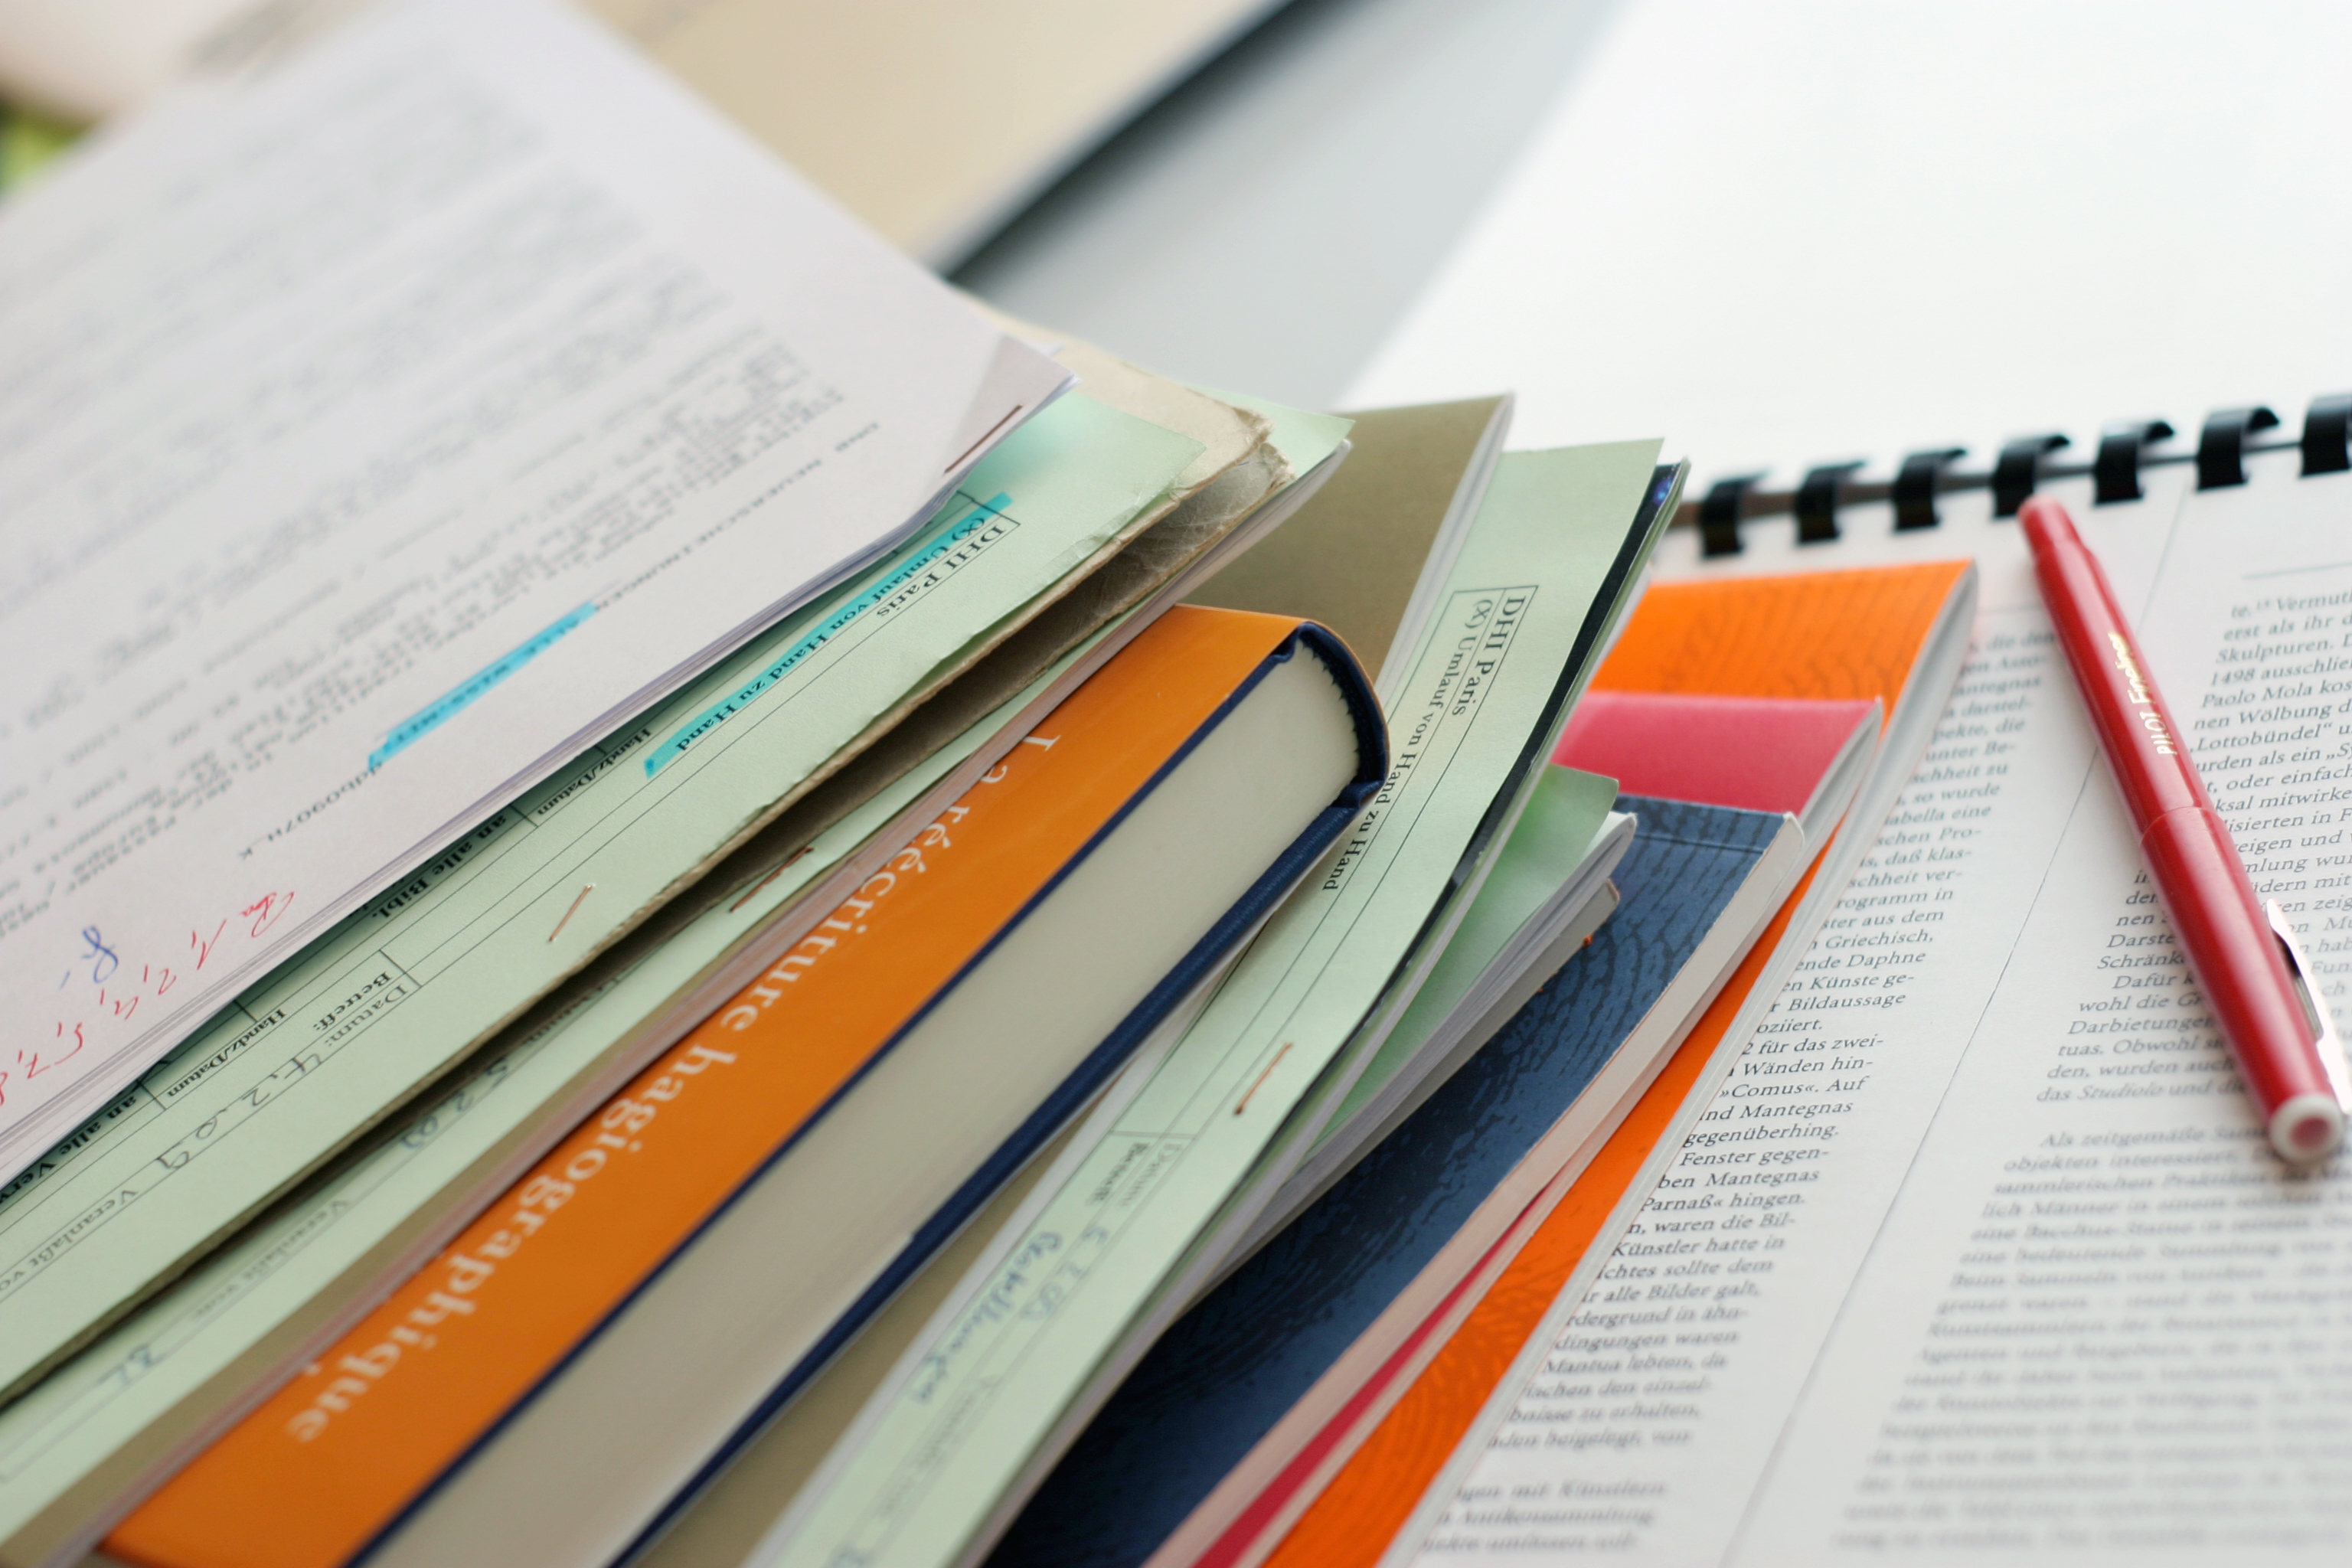 Note: Citations are based on reference standards. However, formatting rules can vary widely between applications and fields of interest or study. The specific requirements or preferences of your reviewing publisher, classroom teacher, institution or organization should be applied.